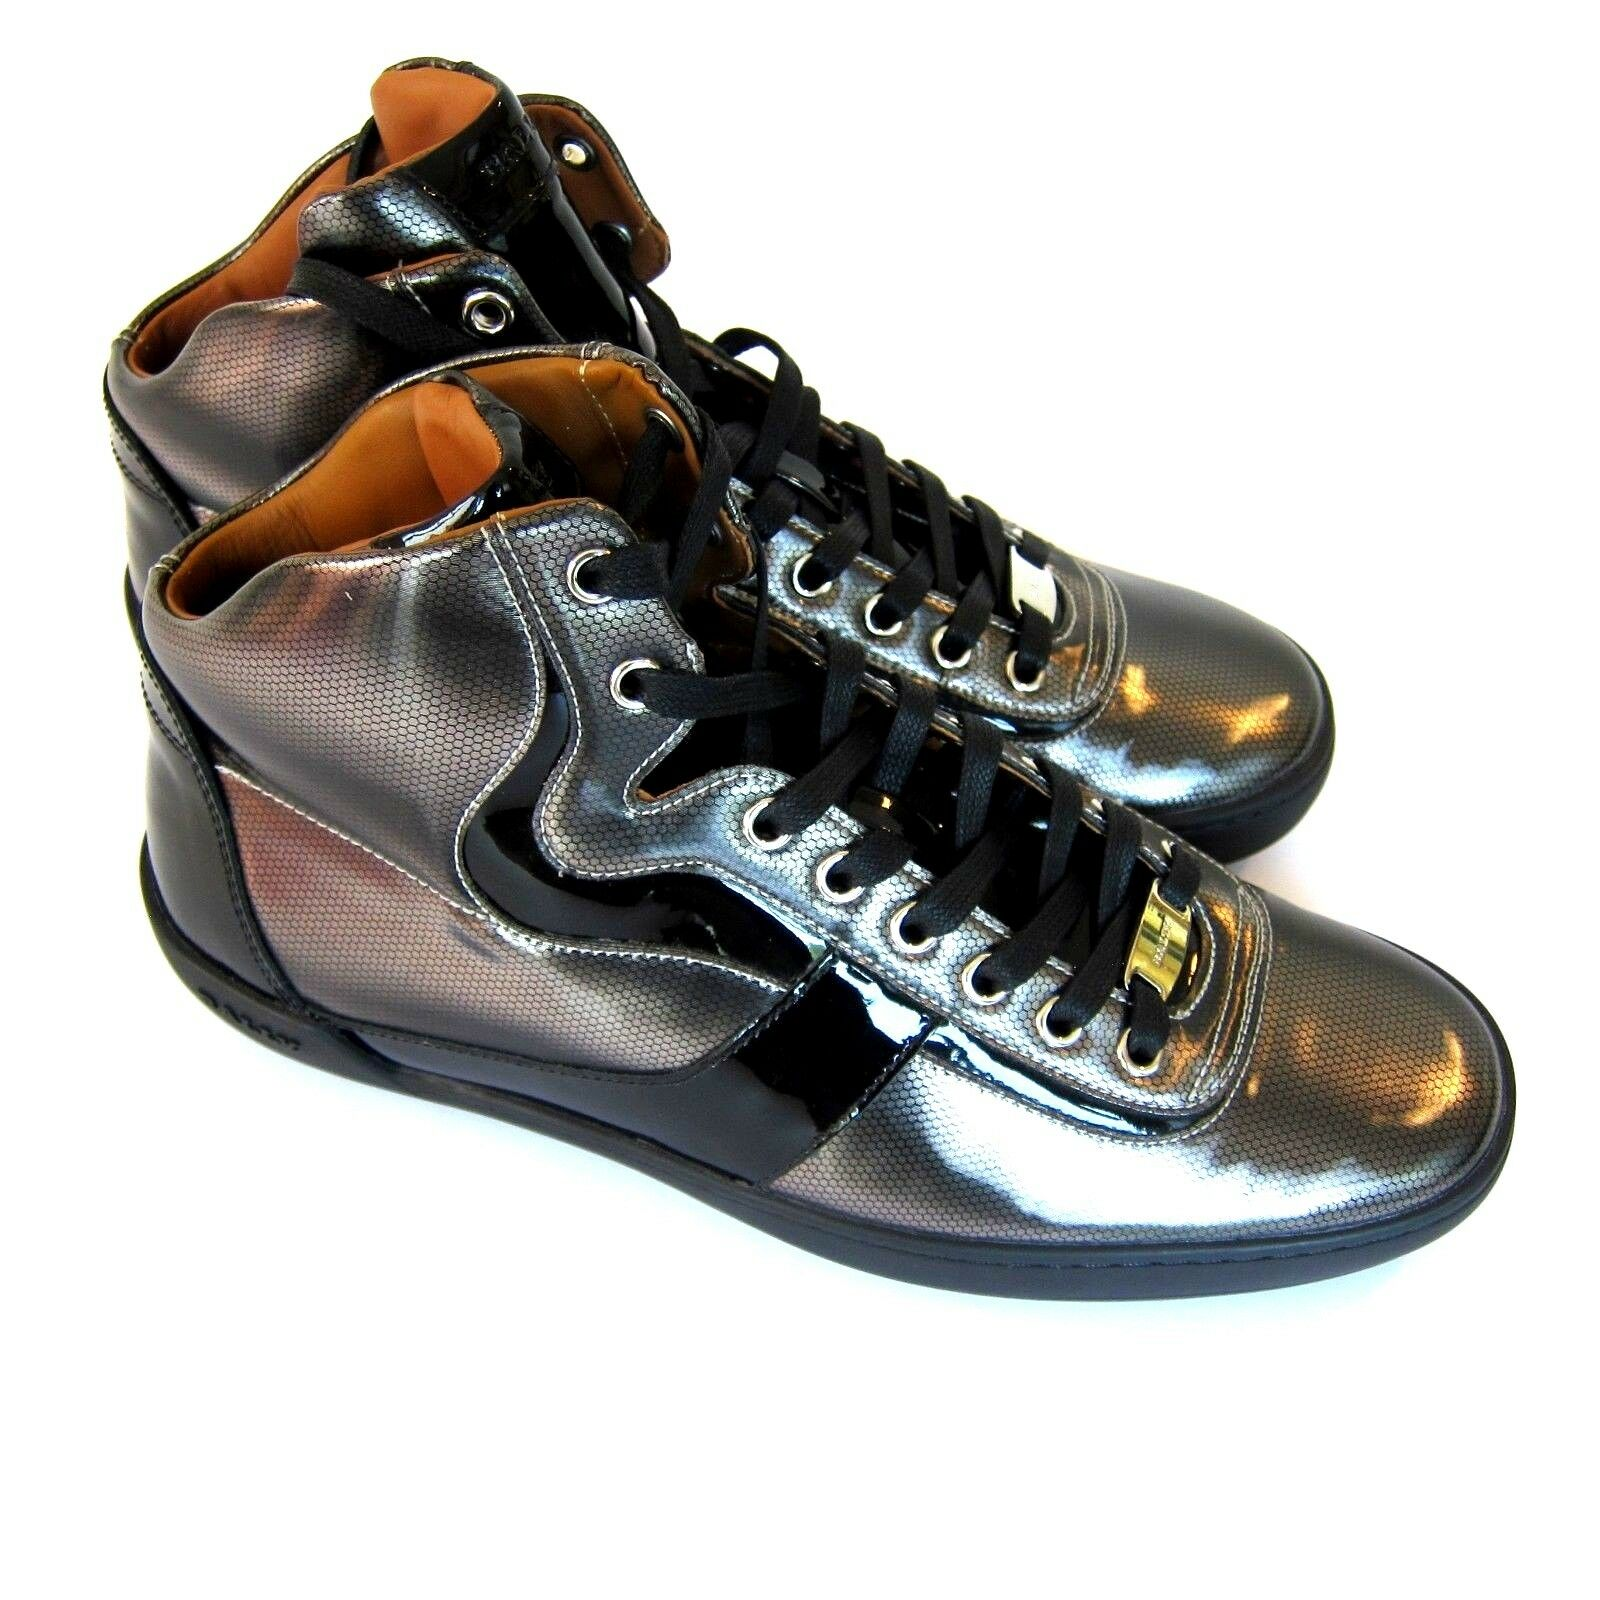 J-3478200 New Bally Eroy Hi Top Metallic Sneakers shoes Size US 9.5 Marked 8.5